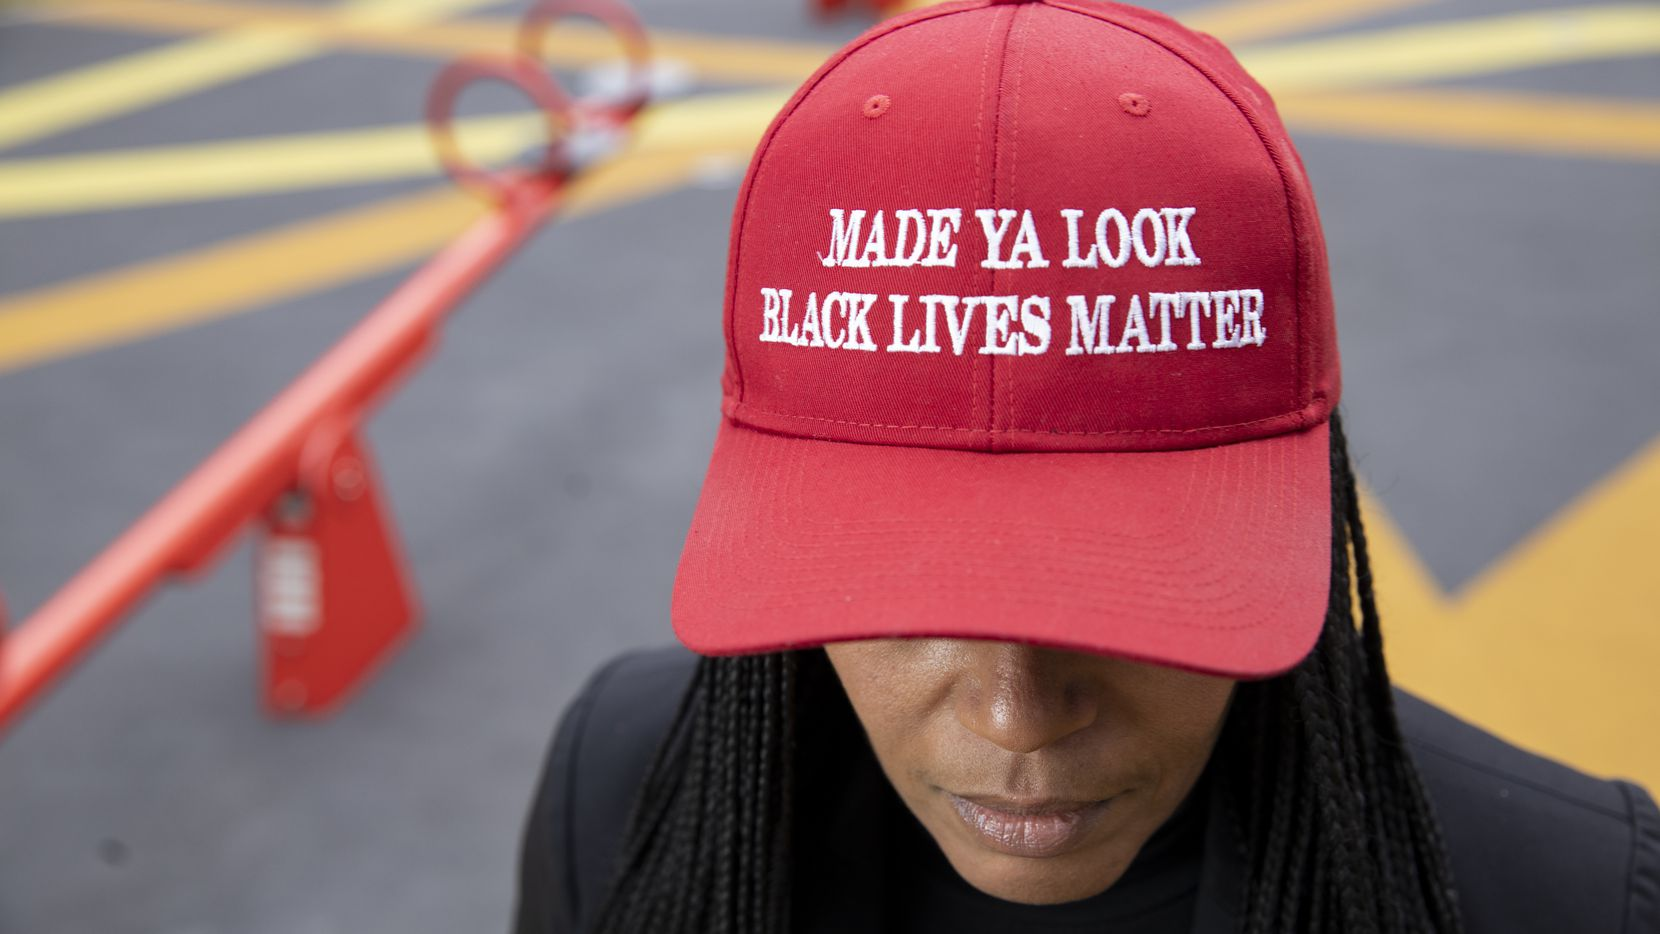 "Shenita Cleveland wears her 'Made ya look Black lives matter"" hat at Pacific Plaza in Dallas on Thursday, Jan. 7, 2021. Cleveland, 48, was shot with less than lethal rounds and arrested for breaking the city's curfew after attending a George Floyd protest on Sunday, May 31. (Juan Figueroa/ The Dallas Morning News)"